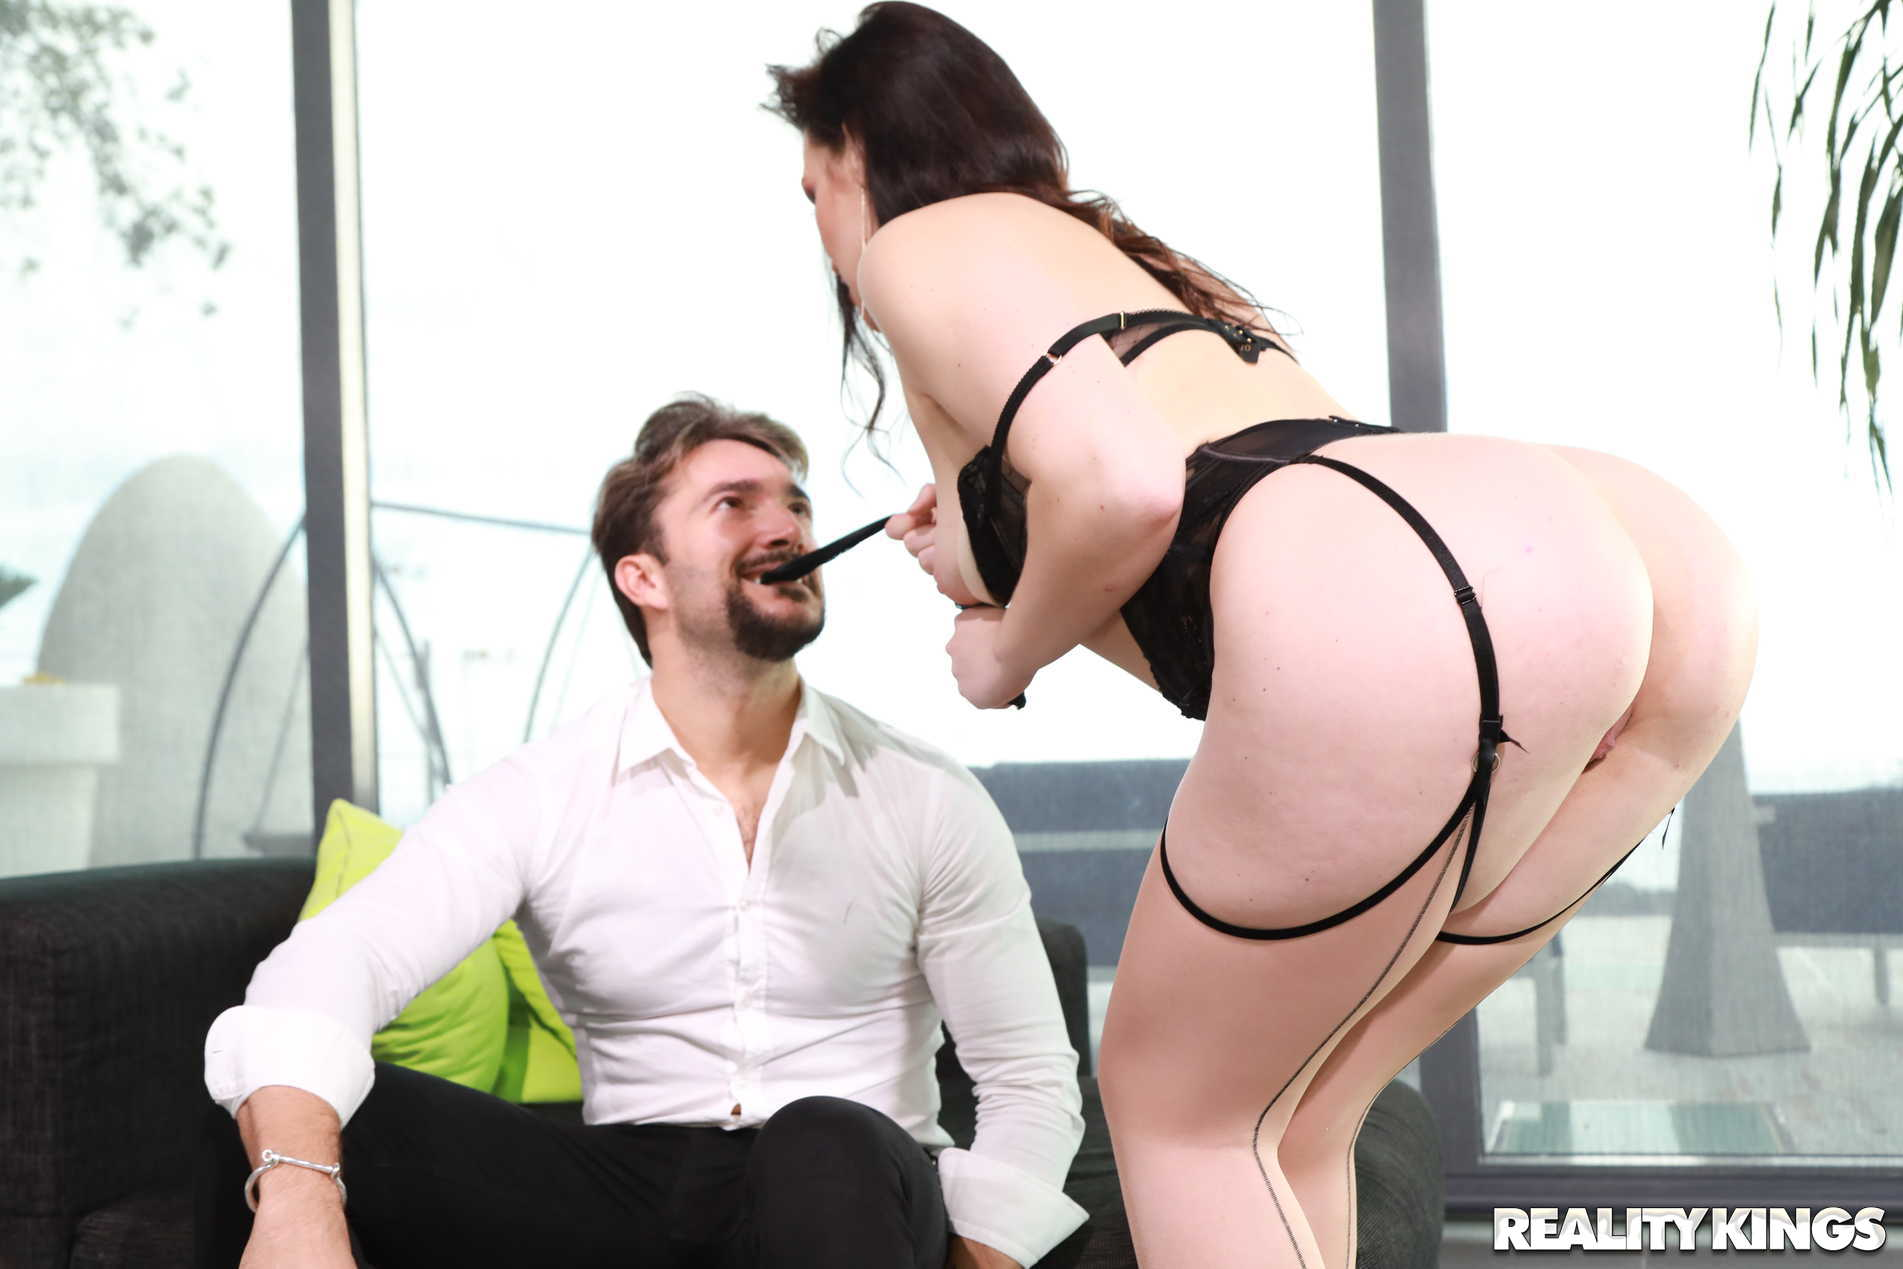 Reality Kings 'From Business To Pleasure' starring Hannah Vivienne (Photo 135)